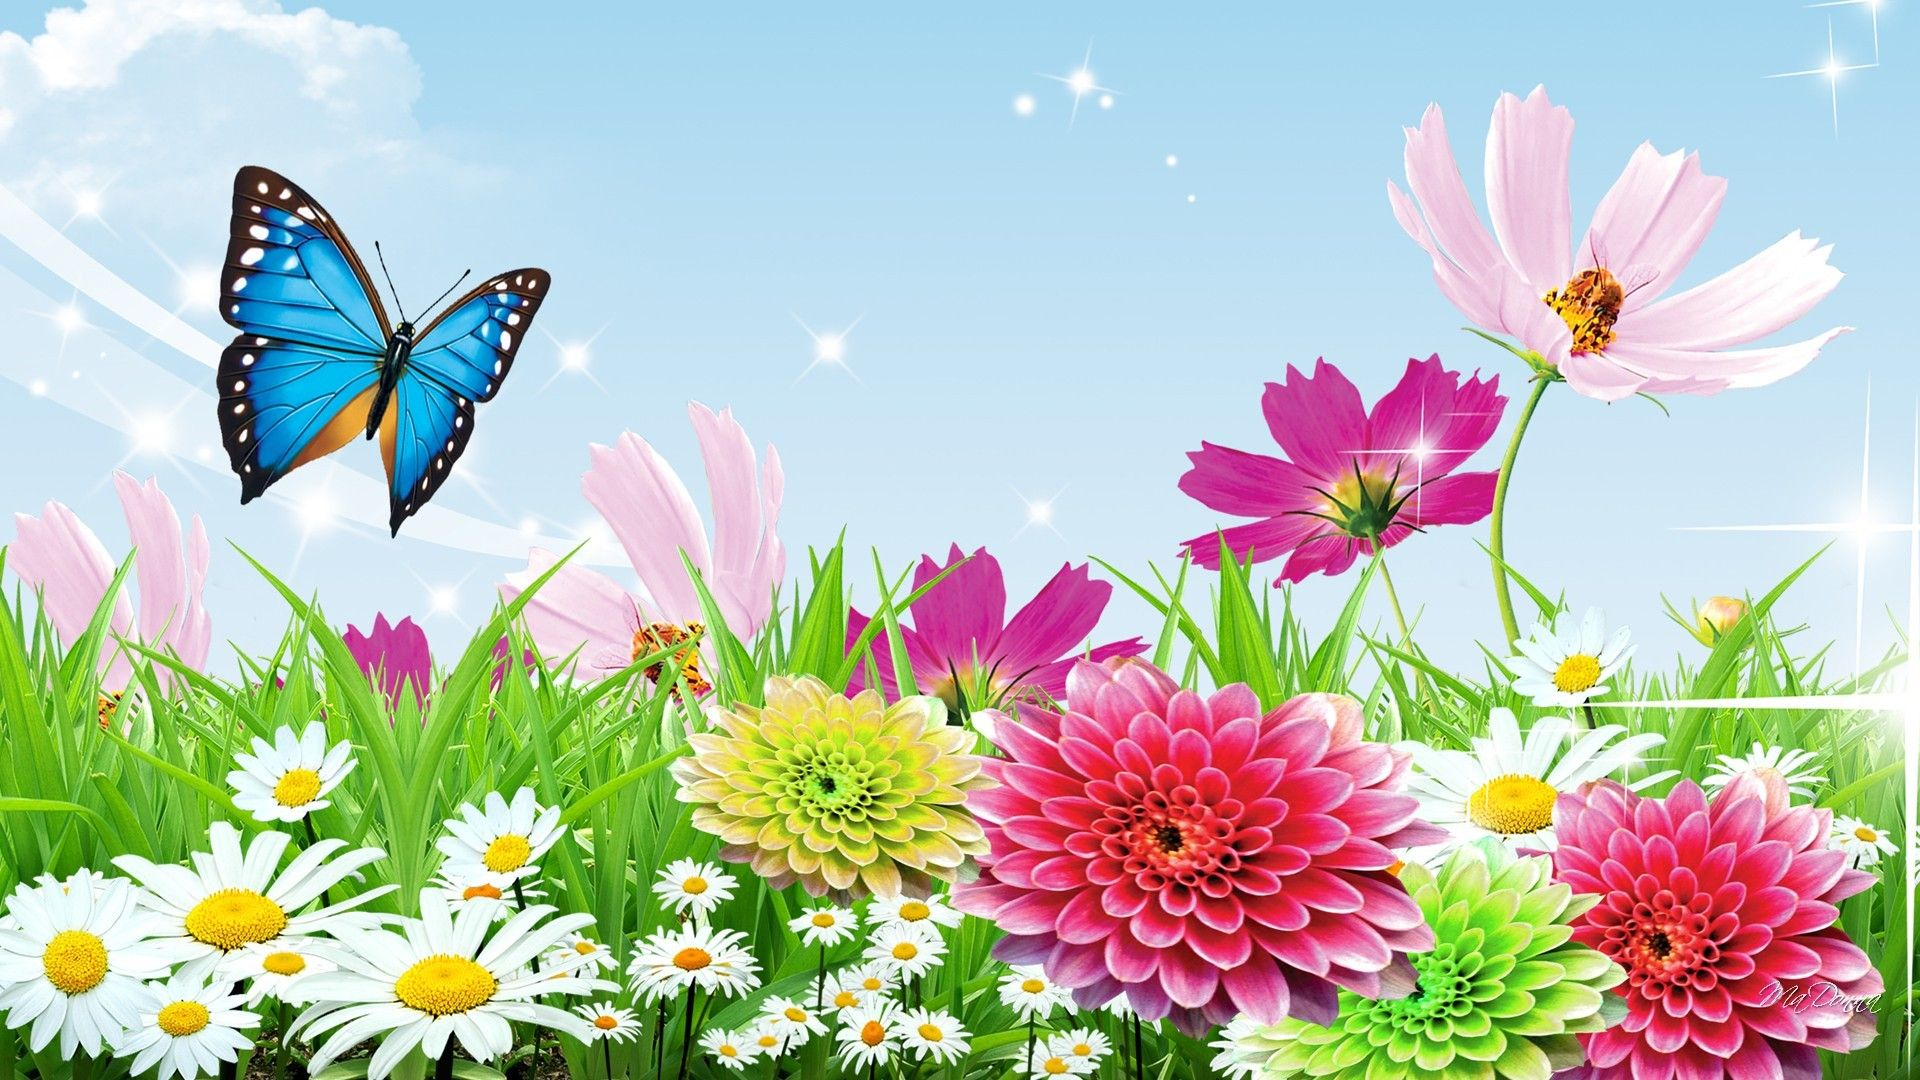 Spring Butterfly Wallpaper Widescreen On Wallpaper 1080p Hd Hd